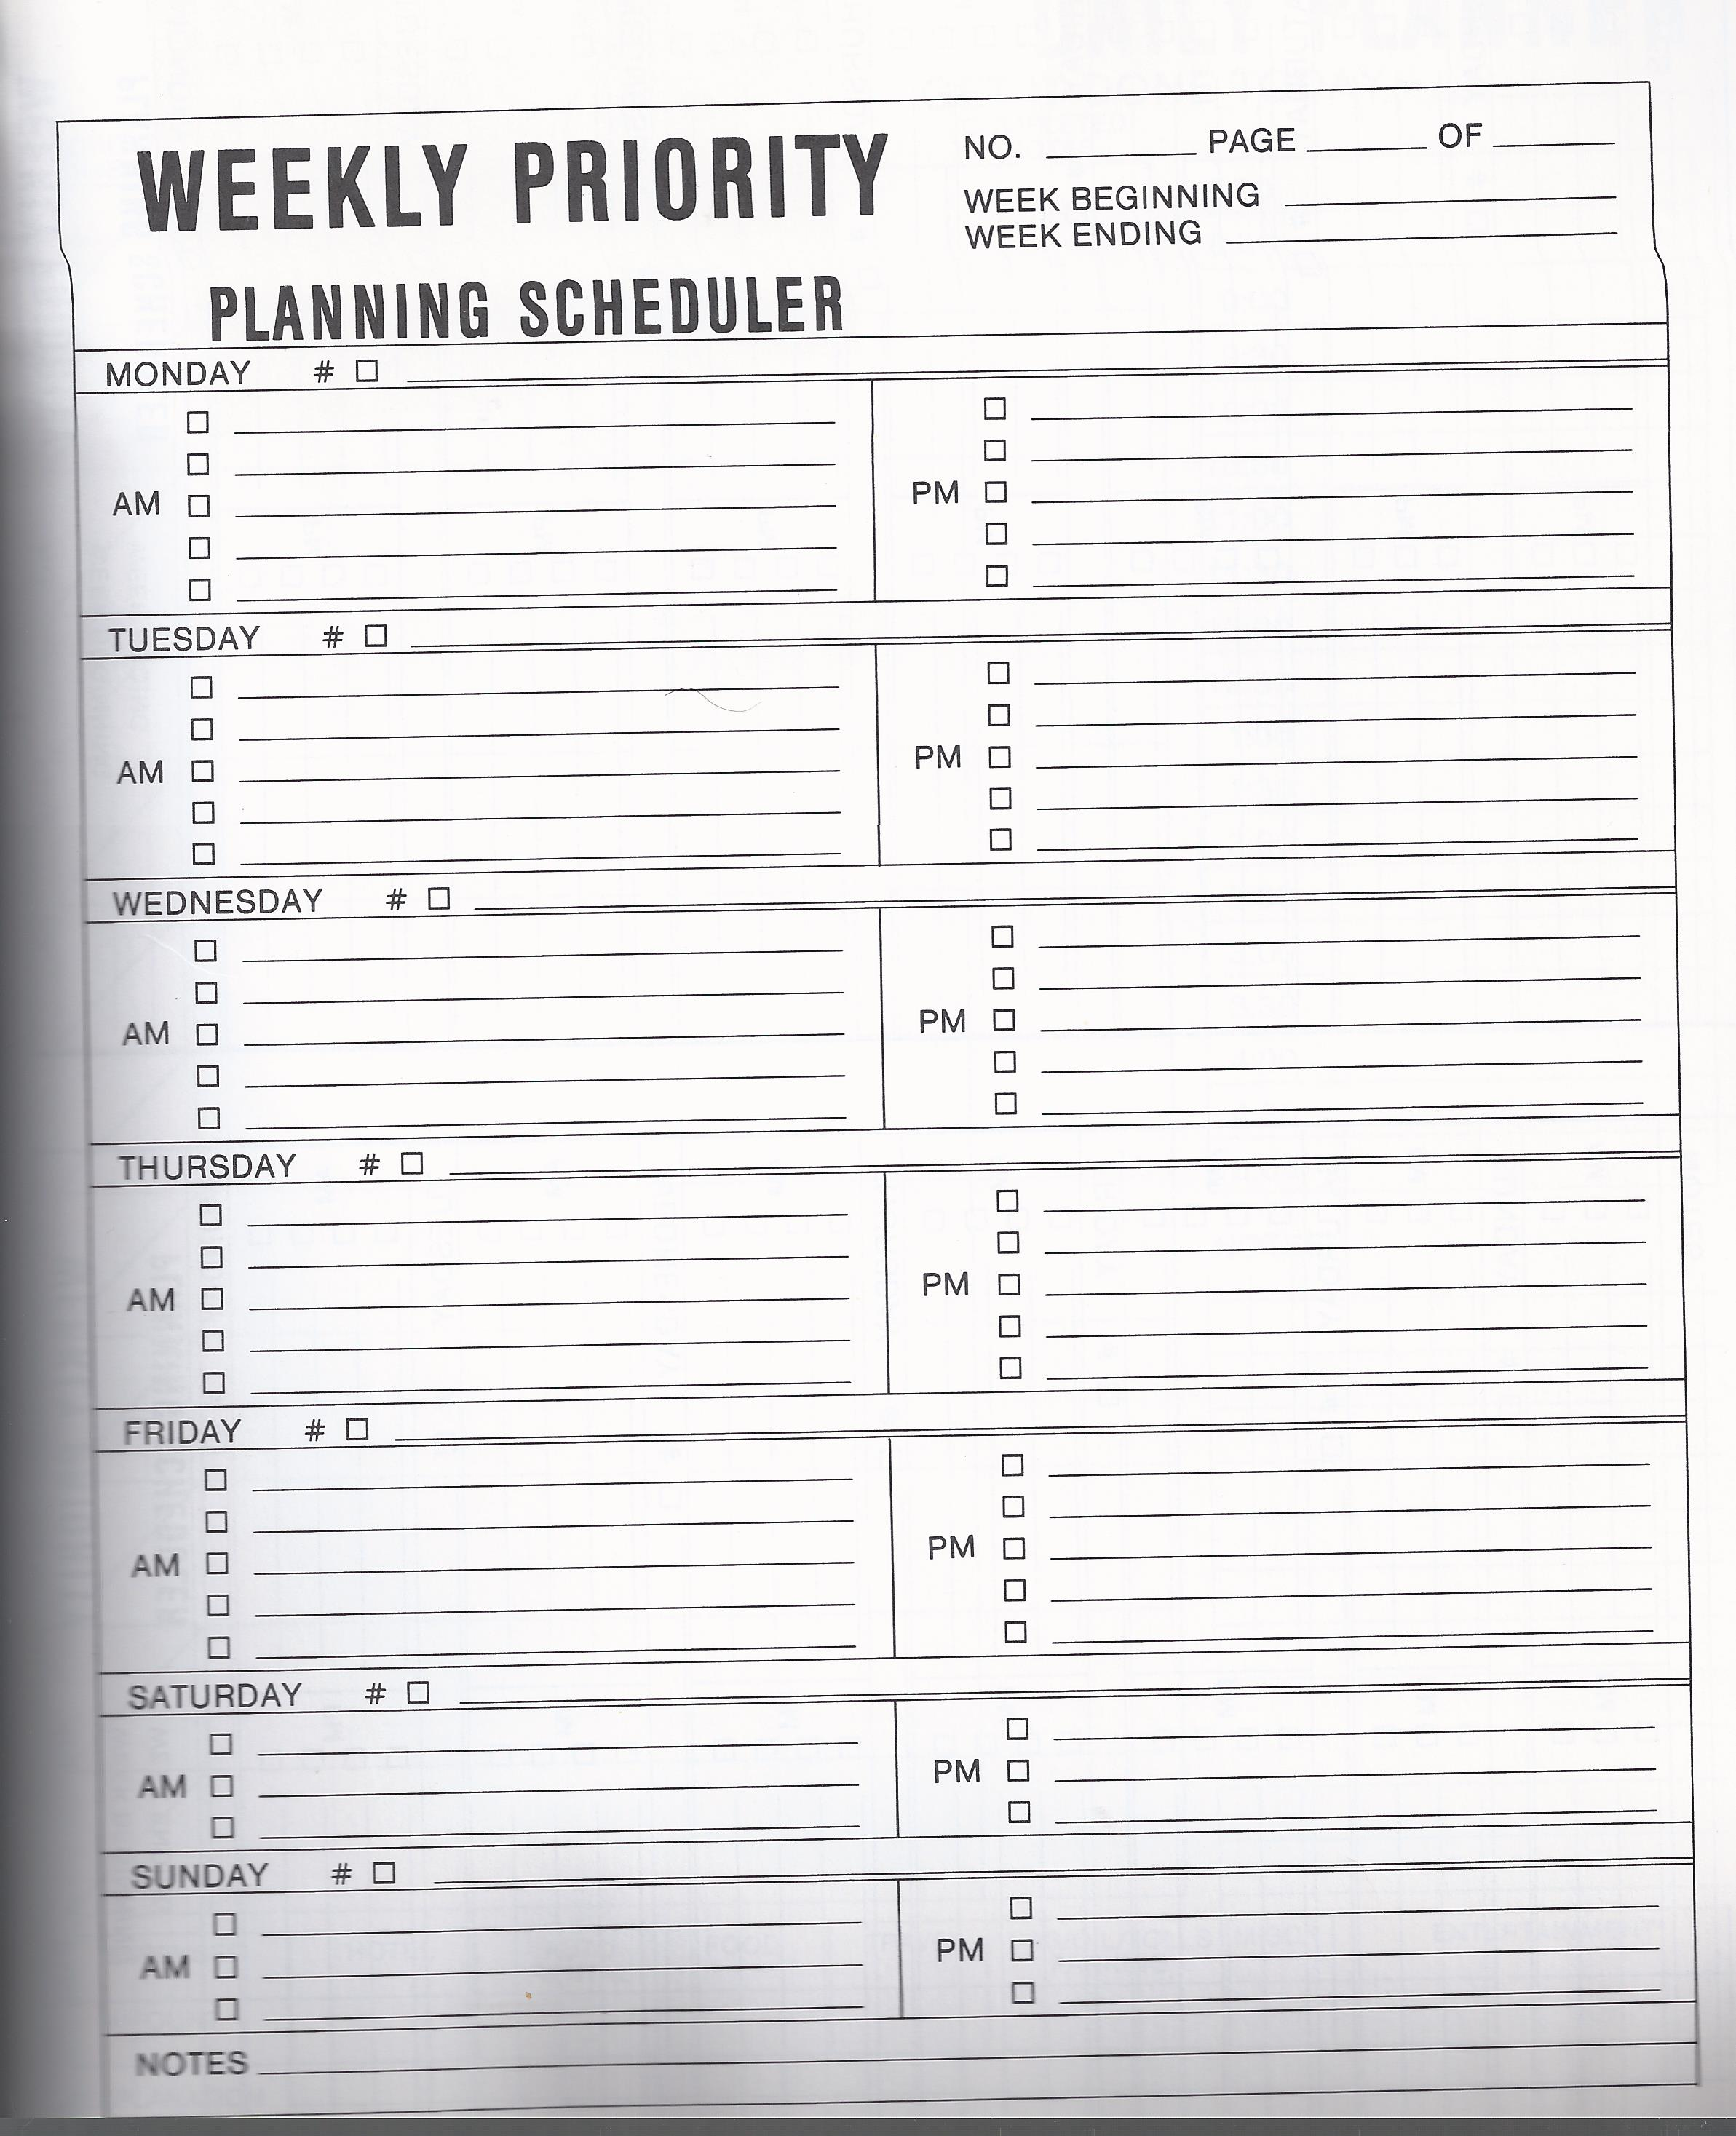 7 Blank Vintage Office Planning Templates To Help You Get Organized